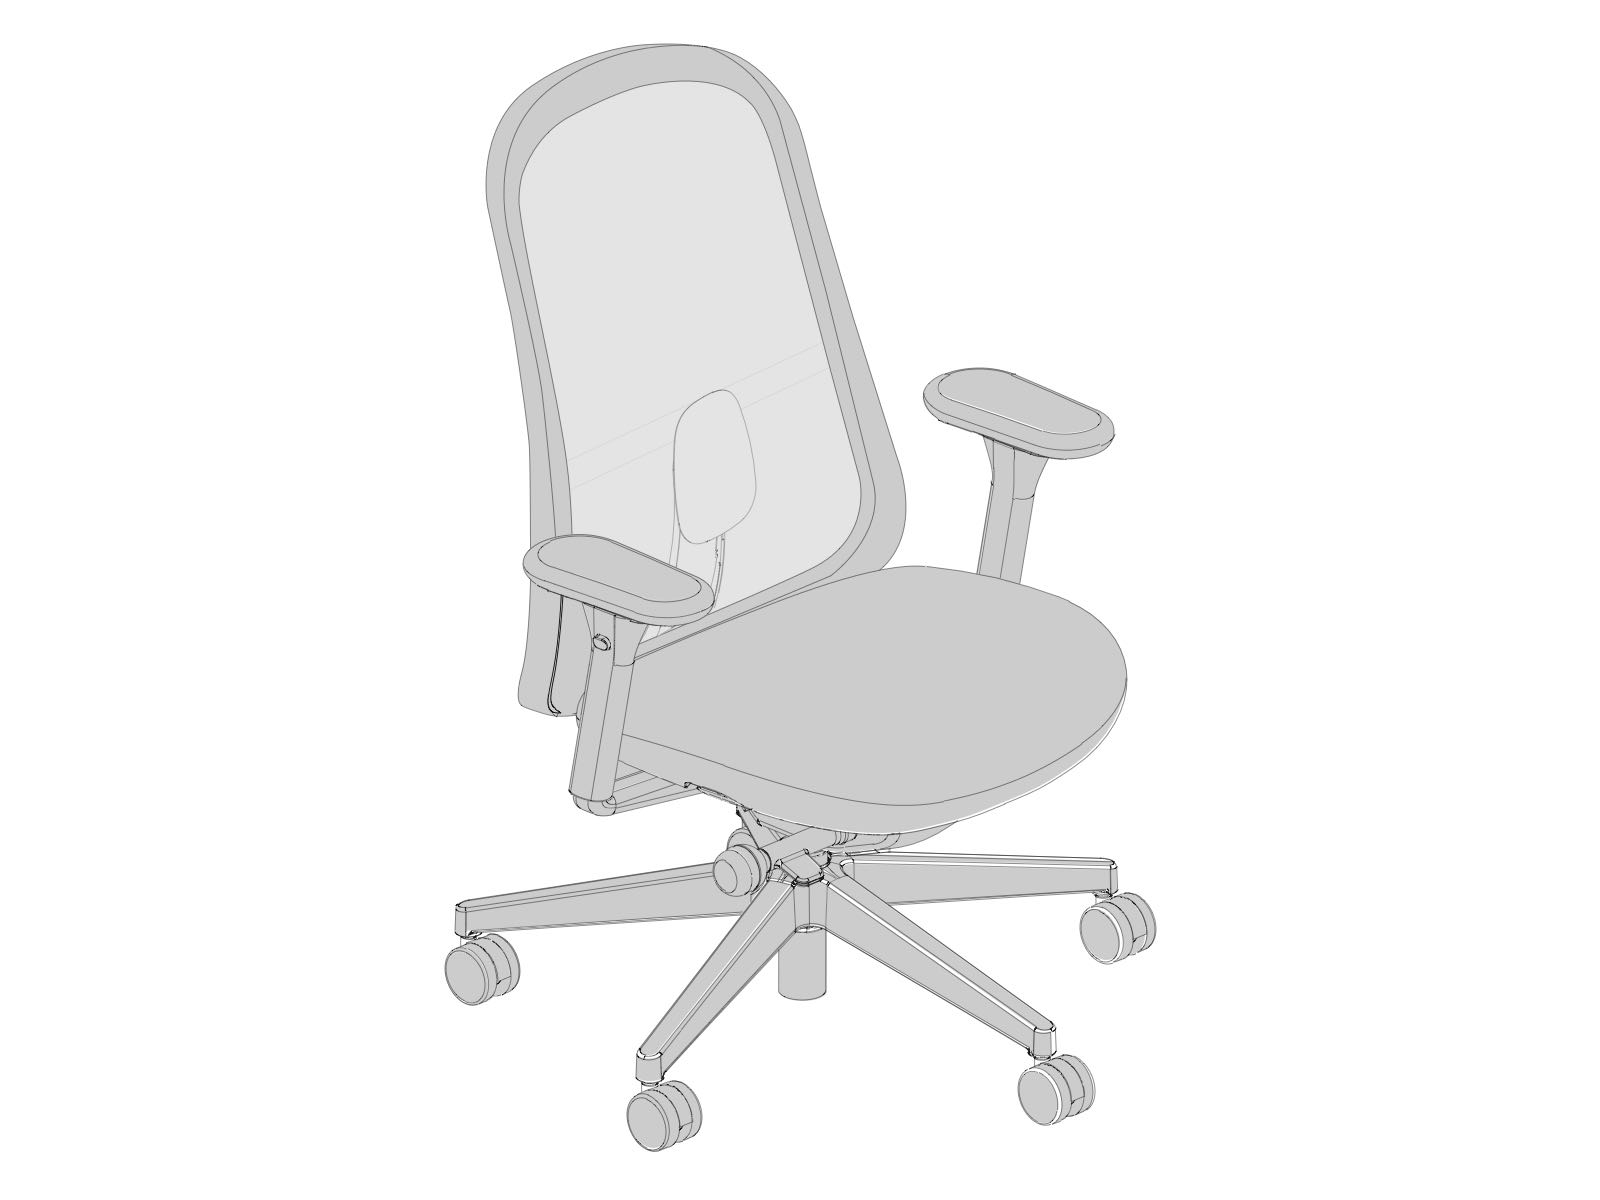 Line art of a Lino Chair, viewed from the front at an angle.